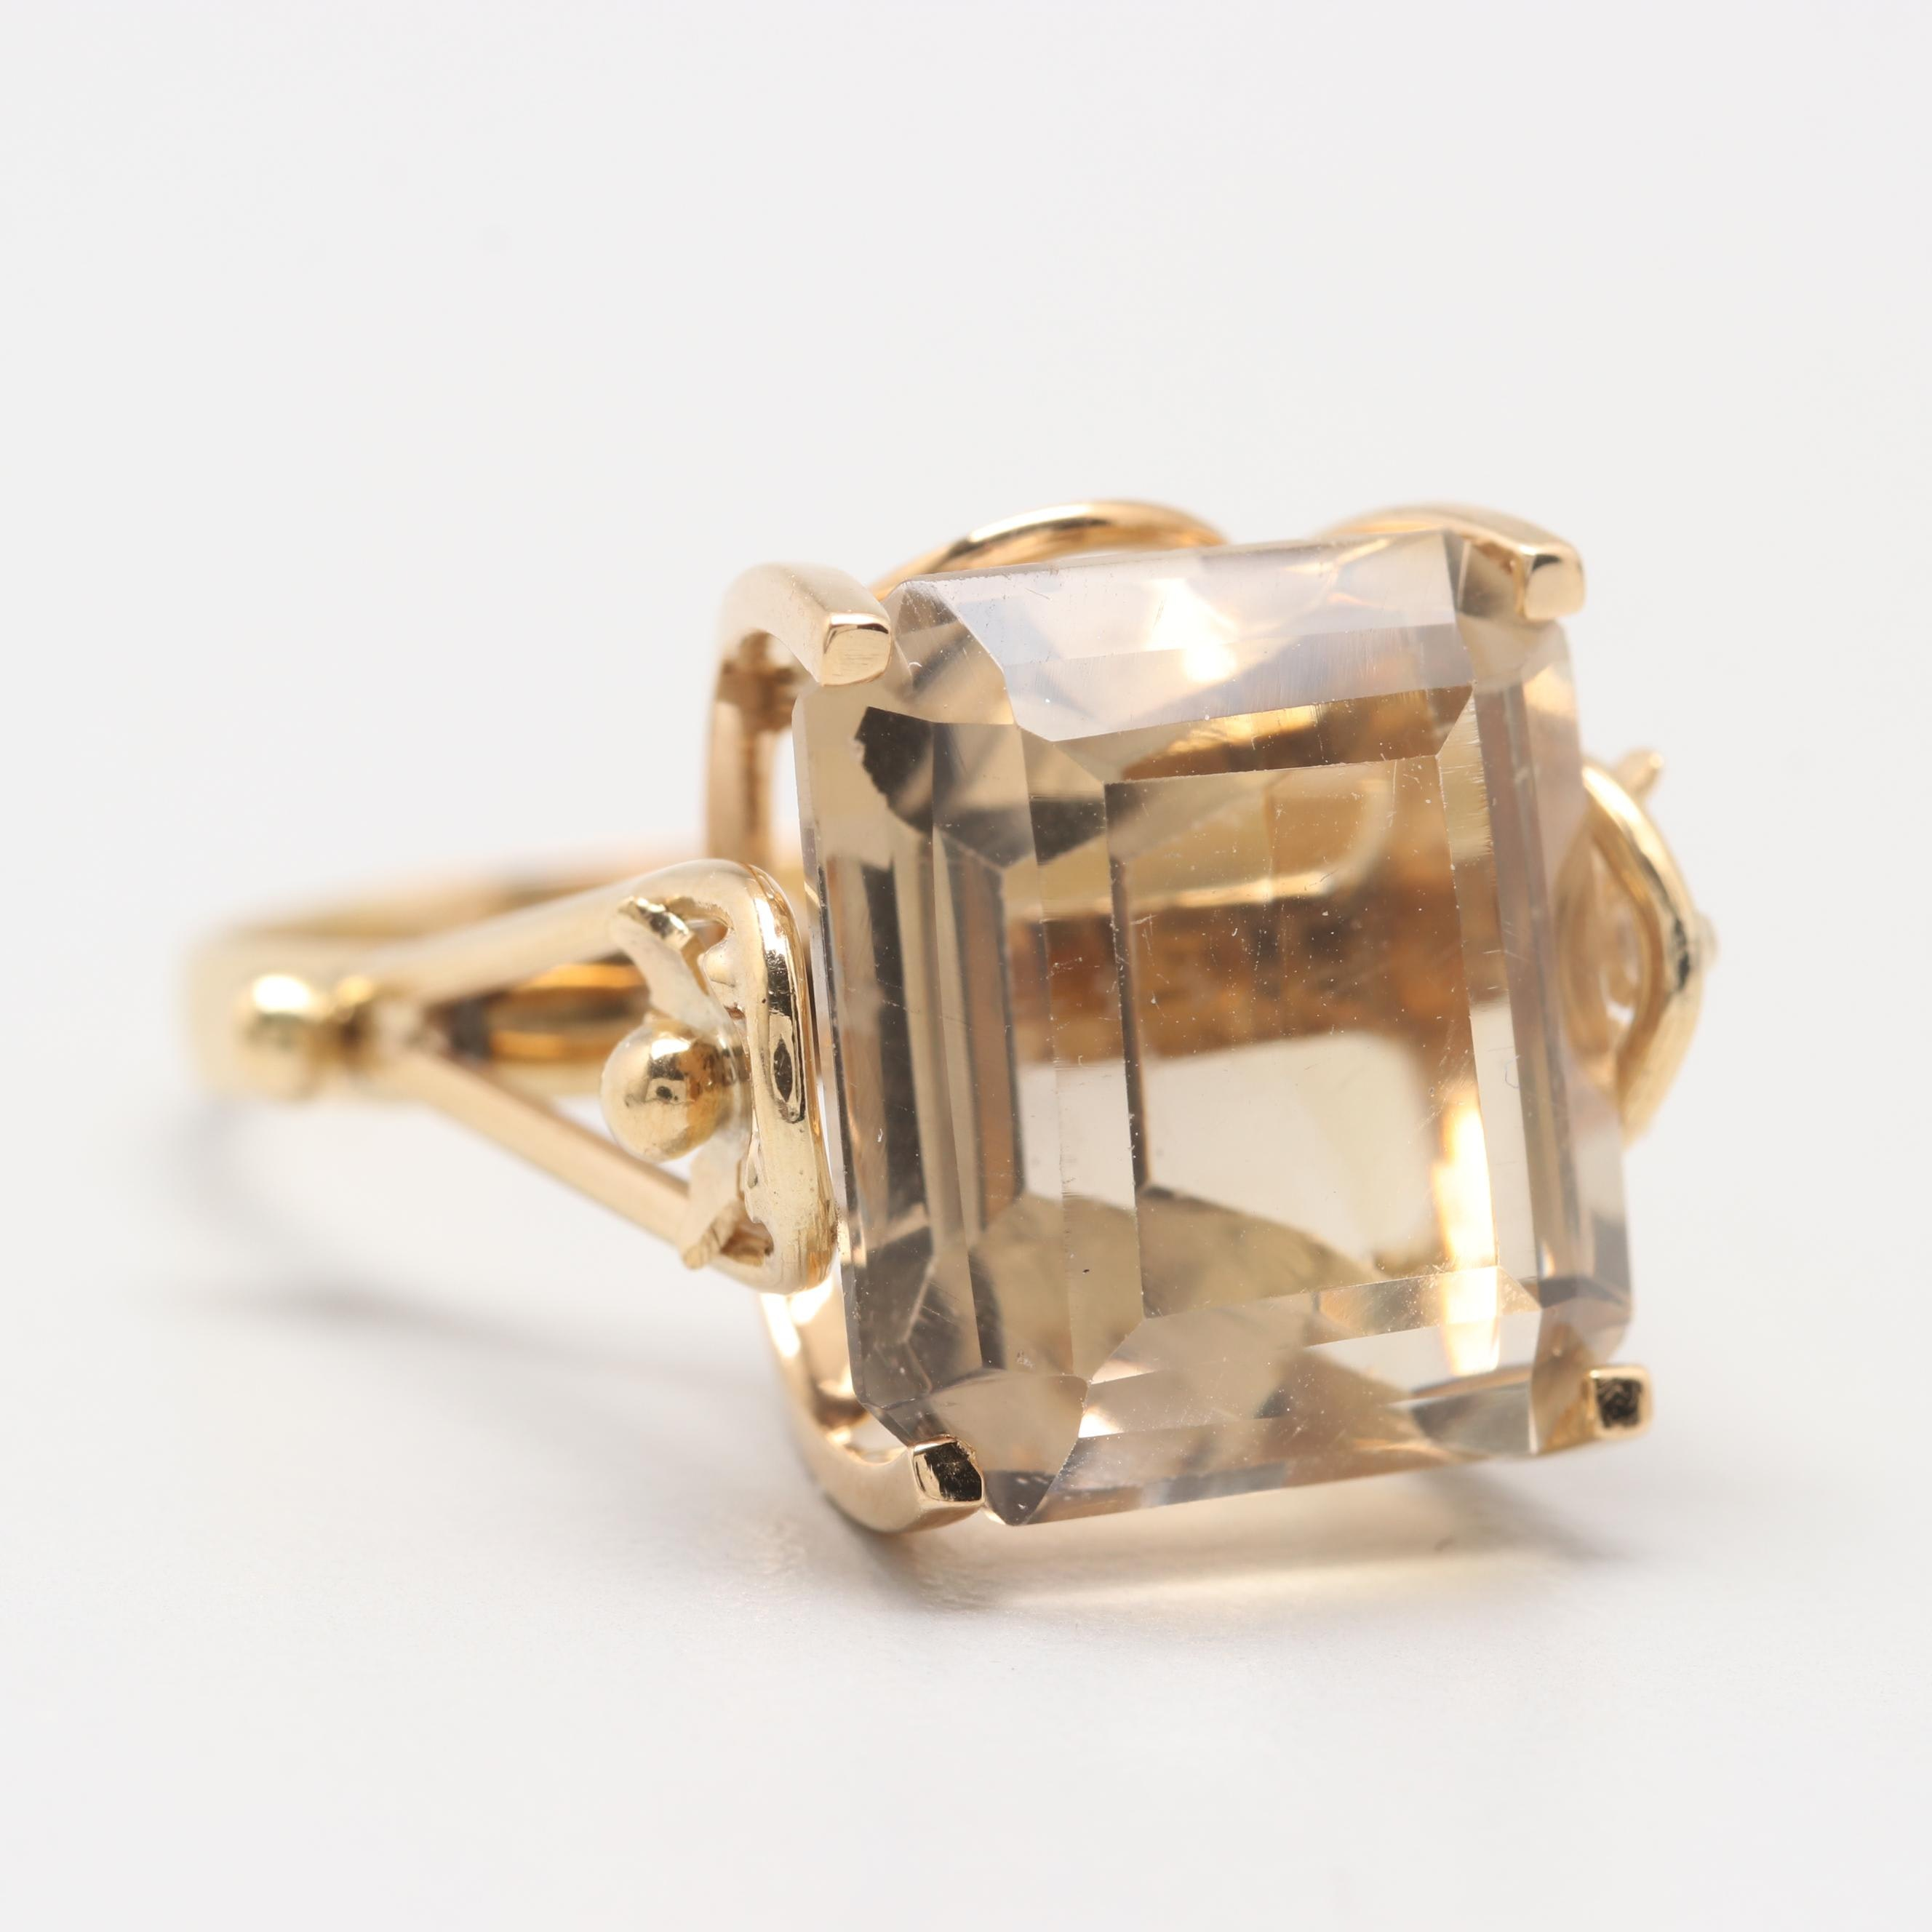 18K Yellow Gold 10.12 CT Citrine Ring